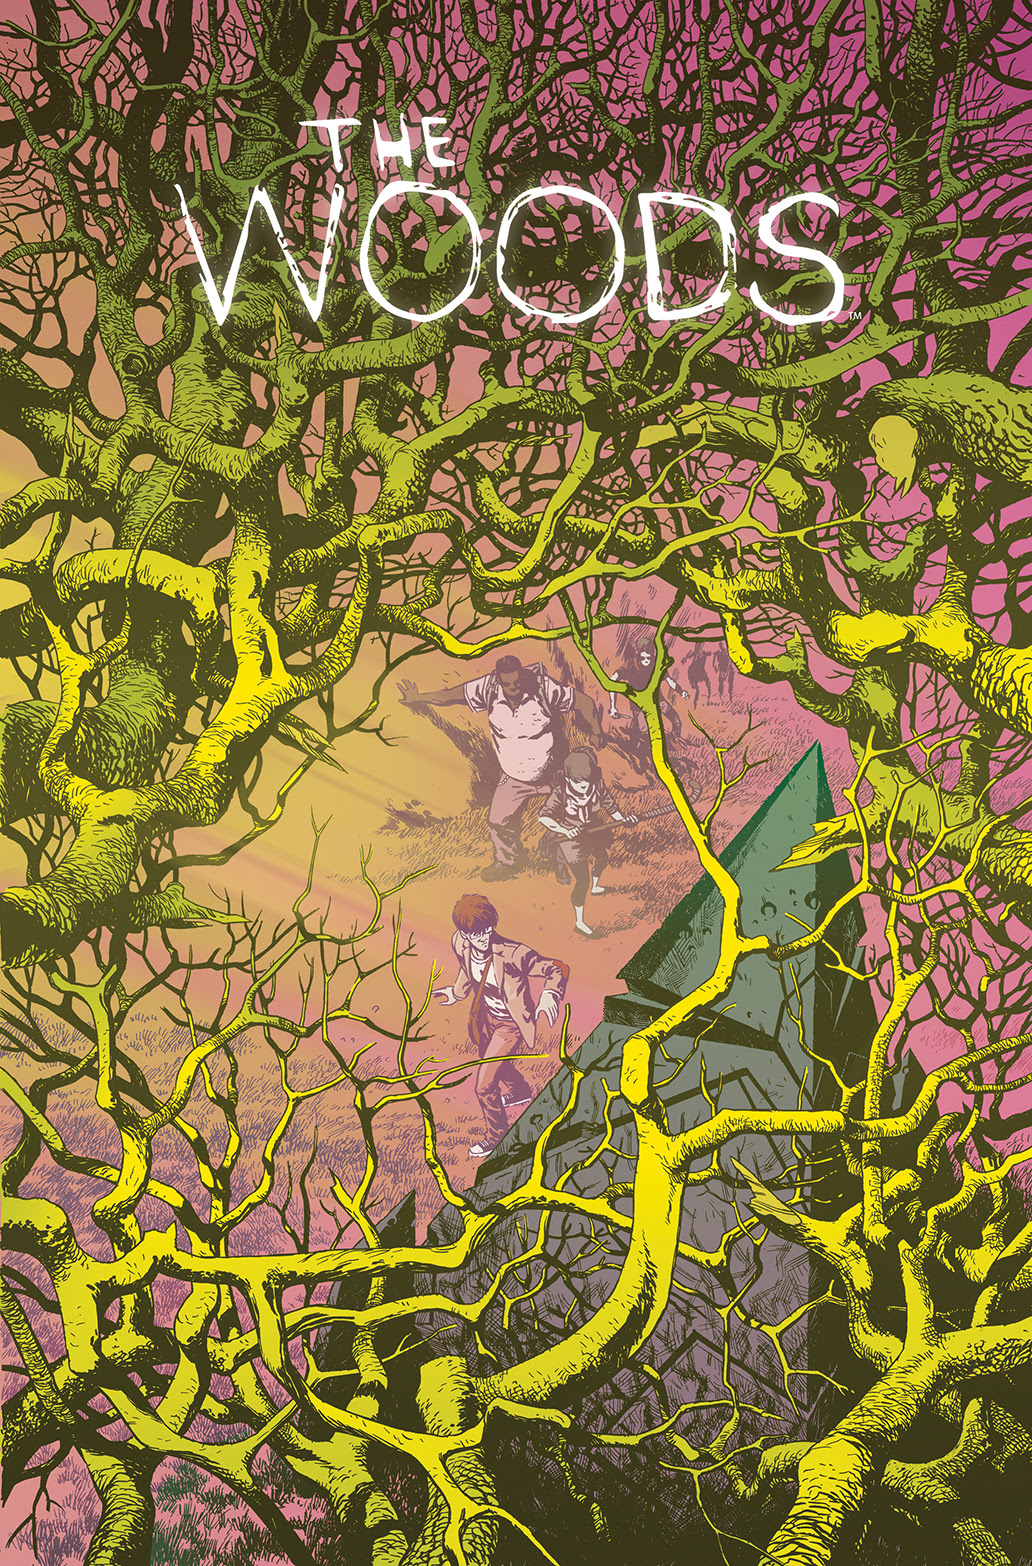 THE WOODS #1 Cover A by Ramón Pérez